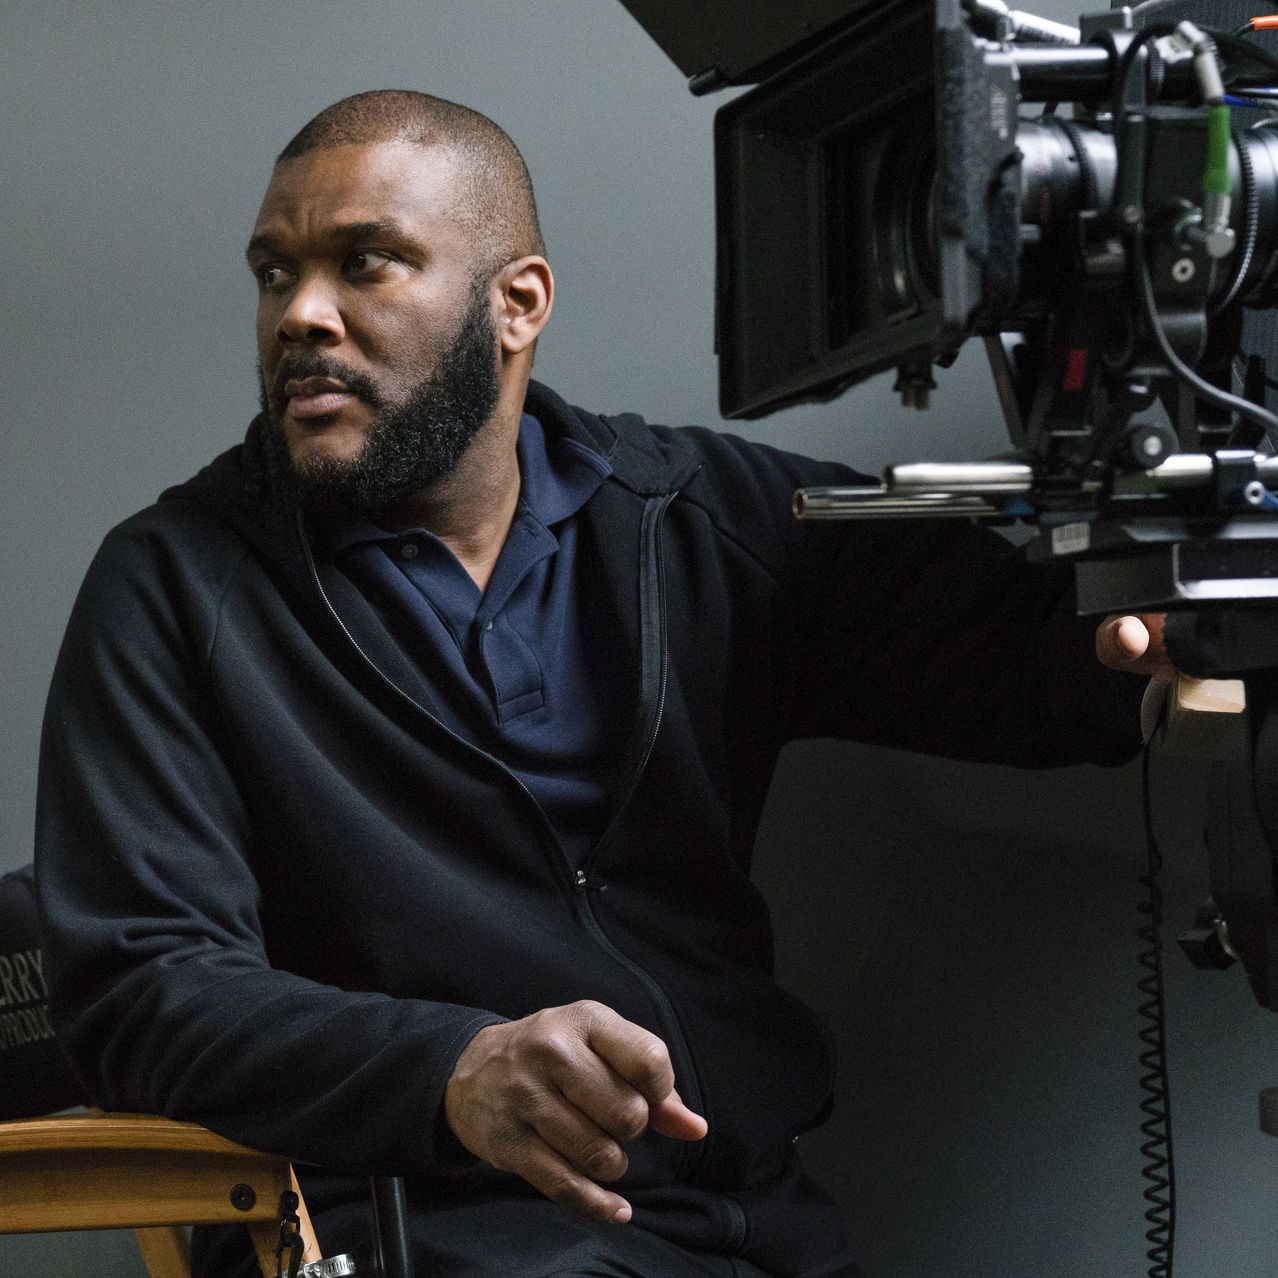 'It's just time,' Tyler Perry says of his plans to end his popular Madea movie franchise. 'There are other things I want to do and I've leaned on it a little bit too long.' His next film, 'Nobody's Fool,' opens this week.